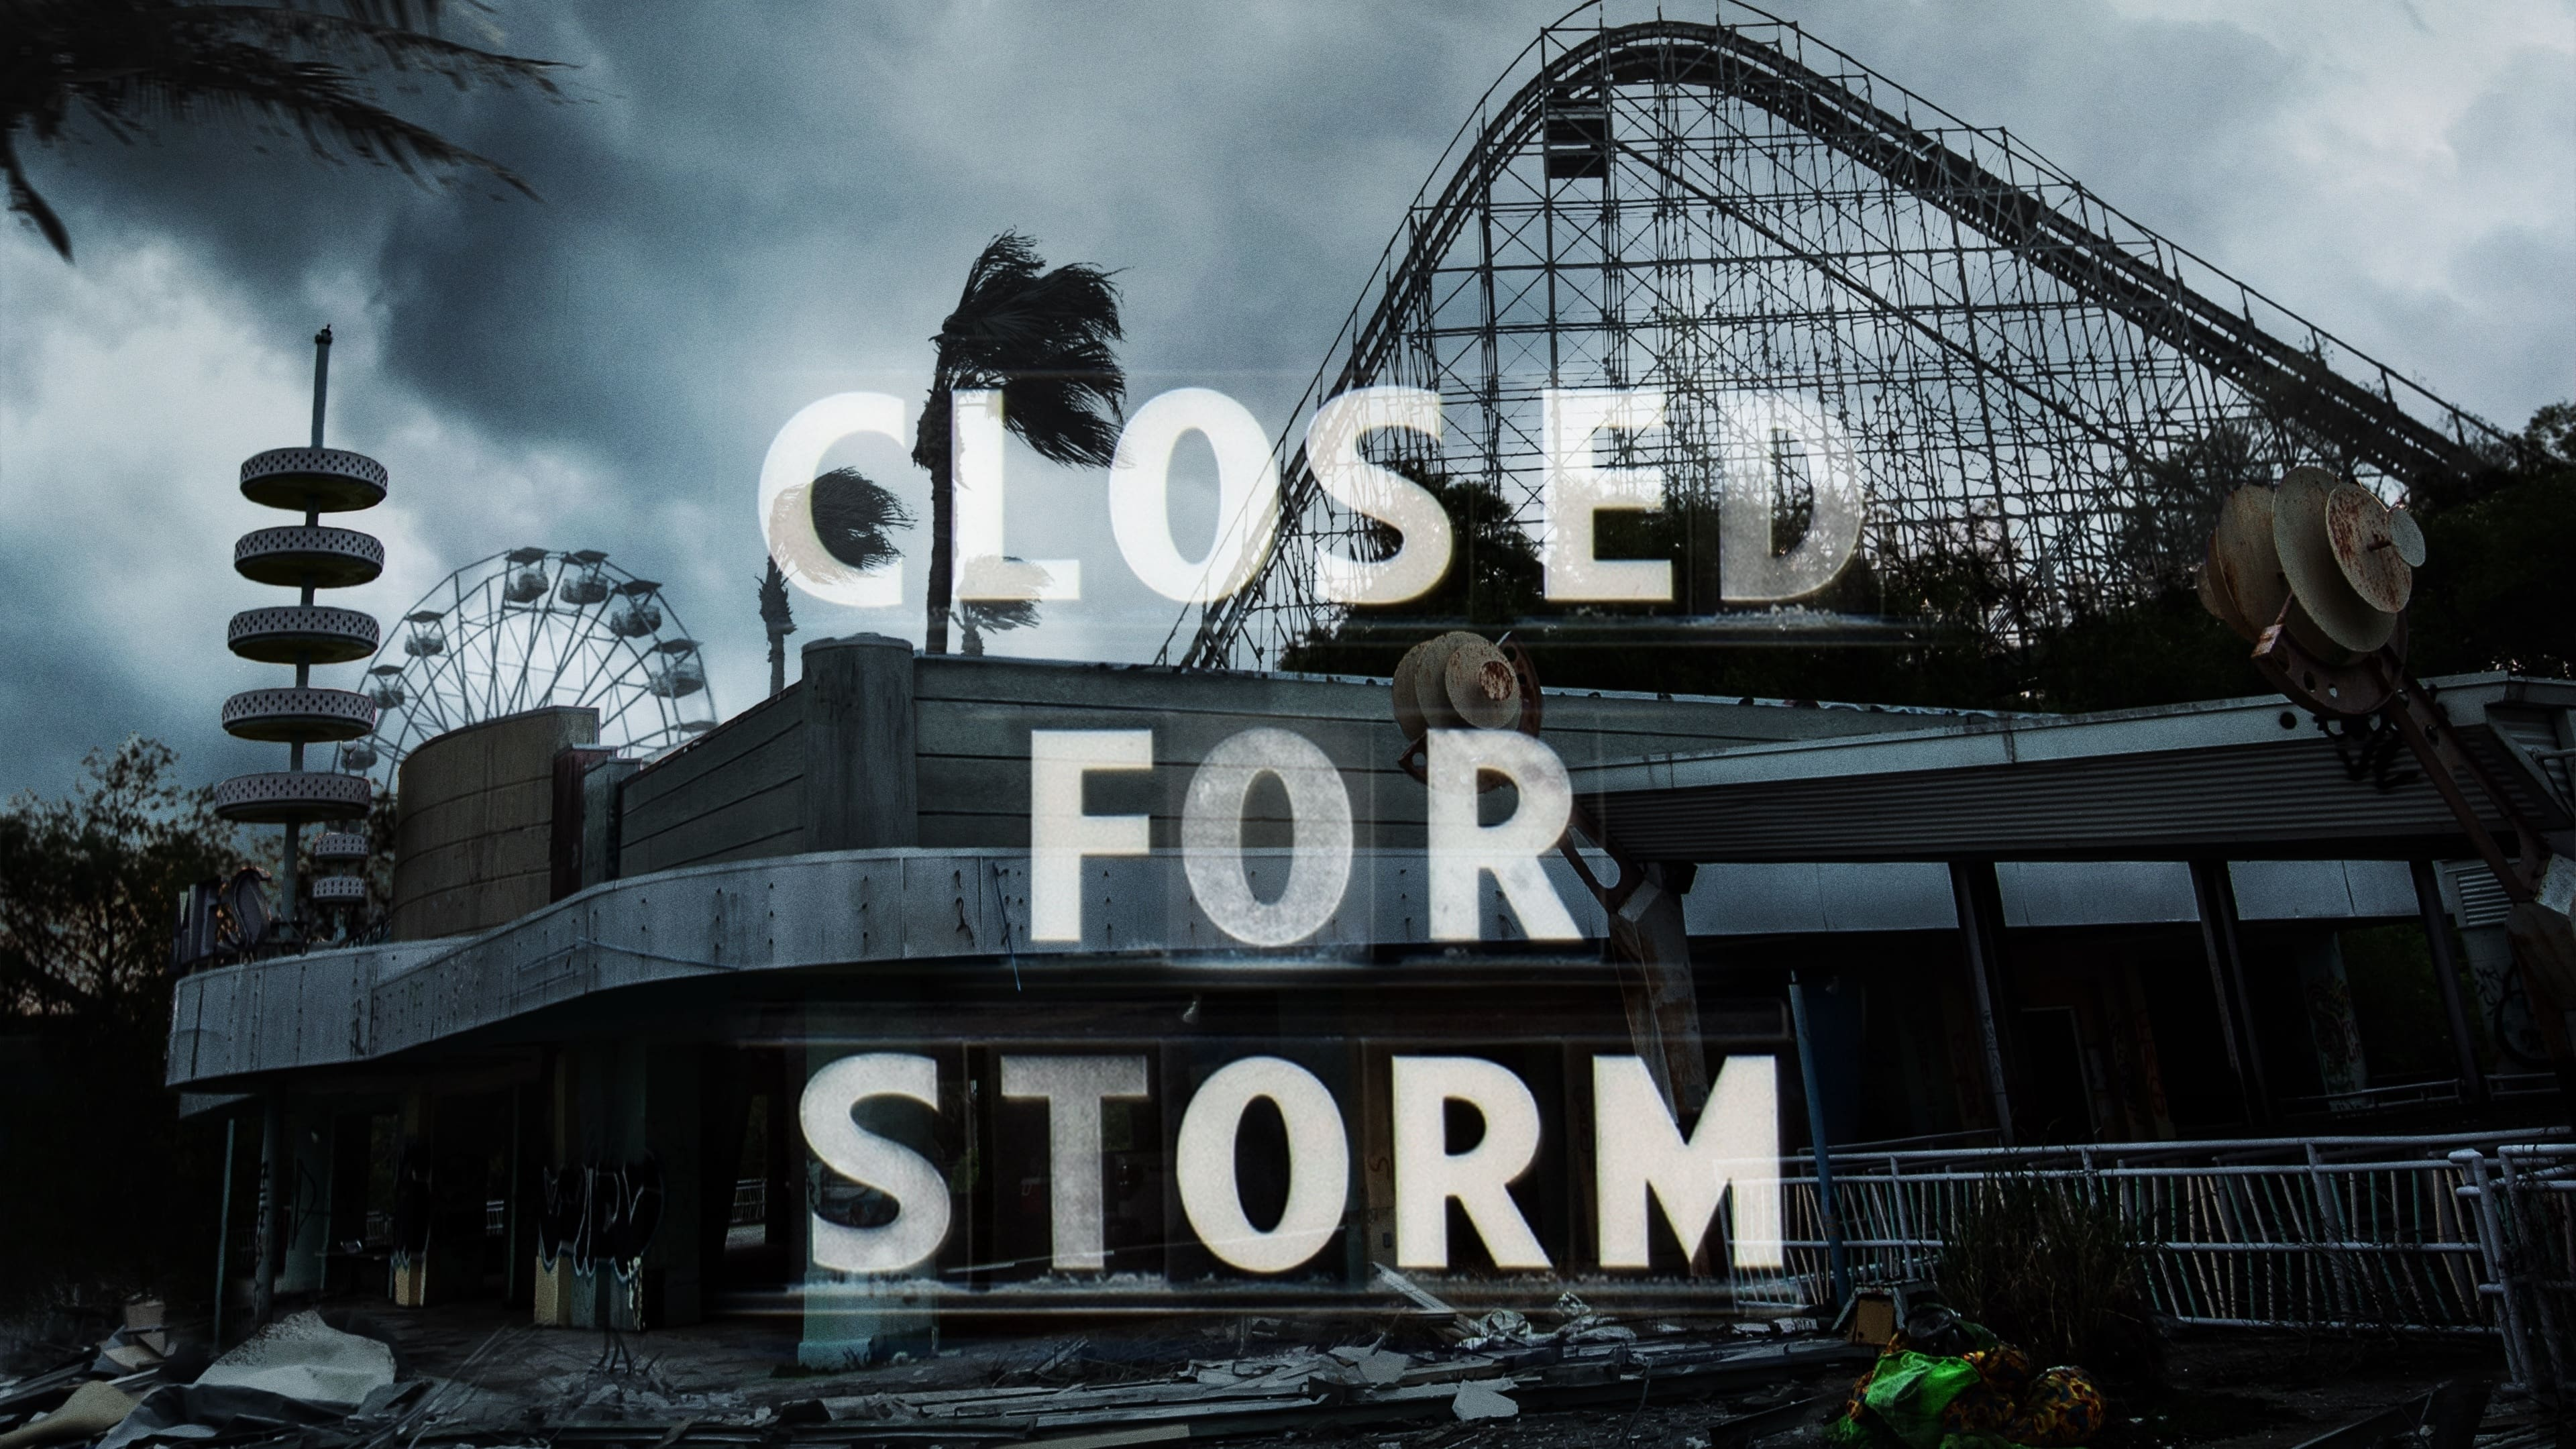 Closed for Storm